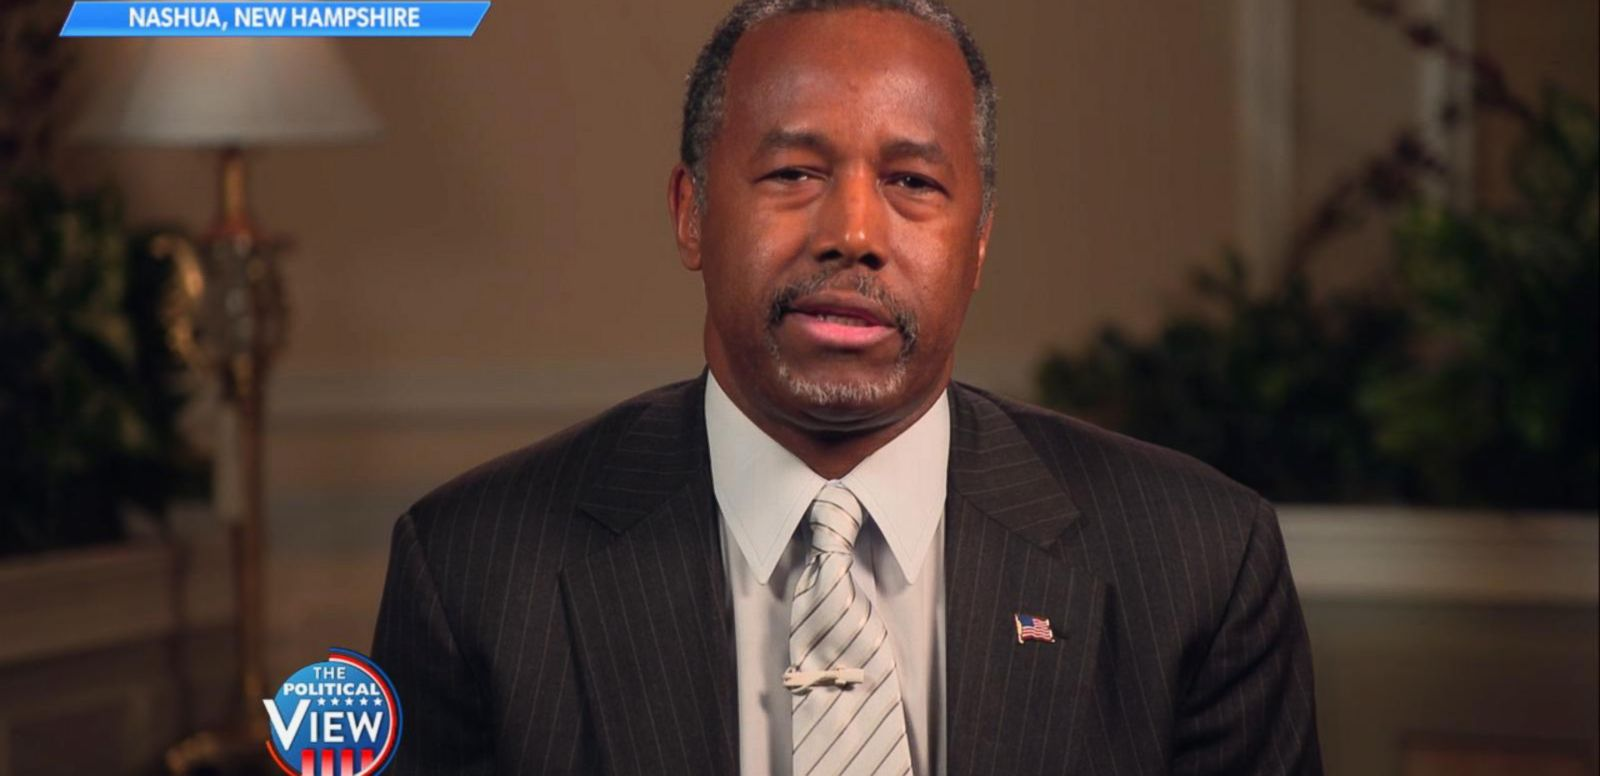 VIDEO: Ben Carson on Ted Cruz Allegedly Stealing Votes: 'Very Unethical'